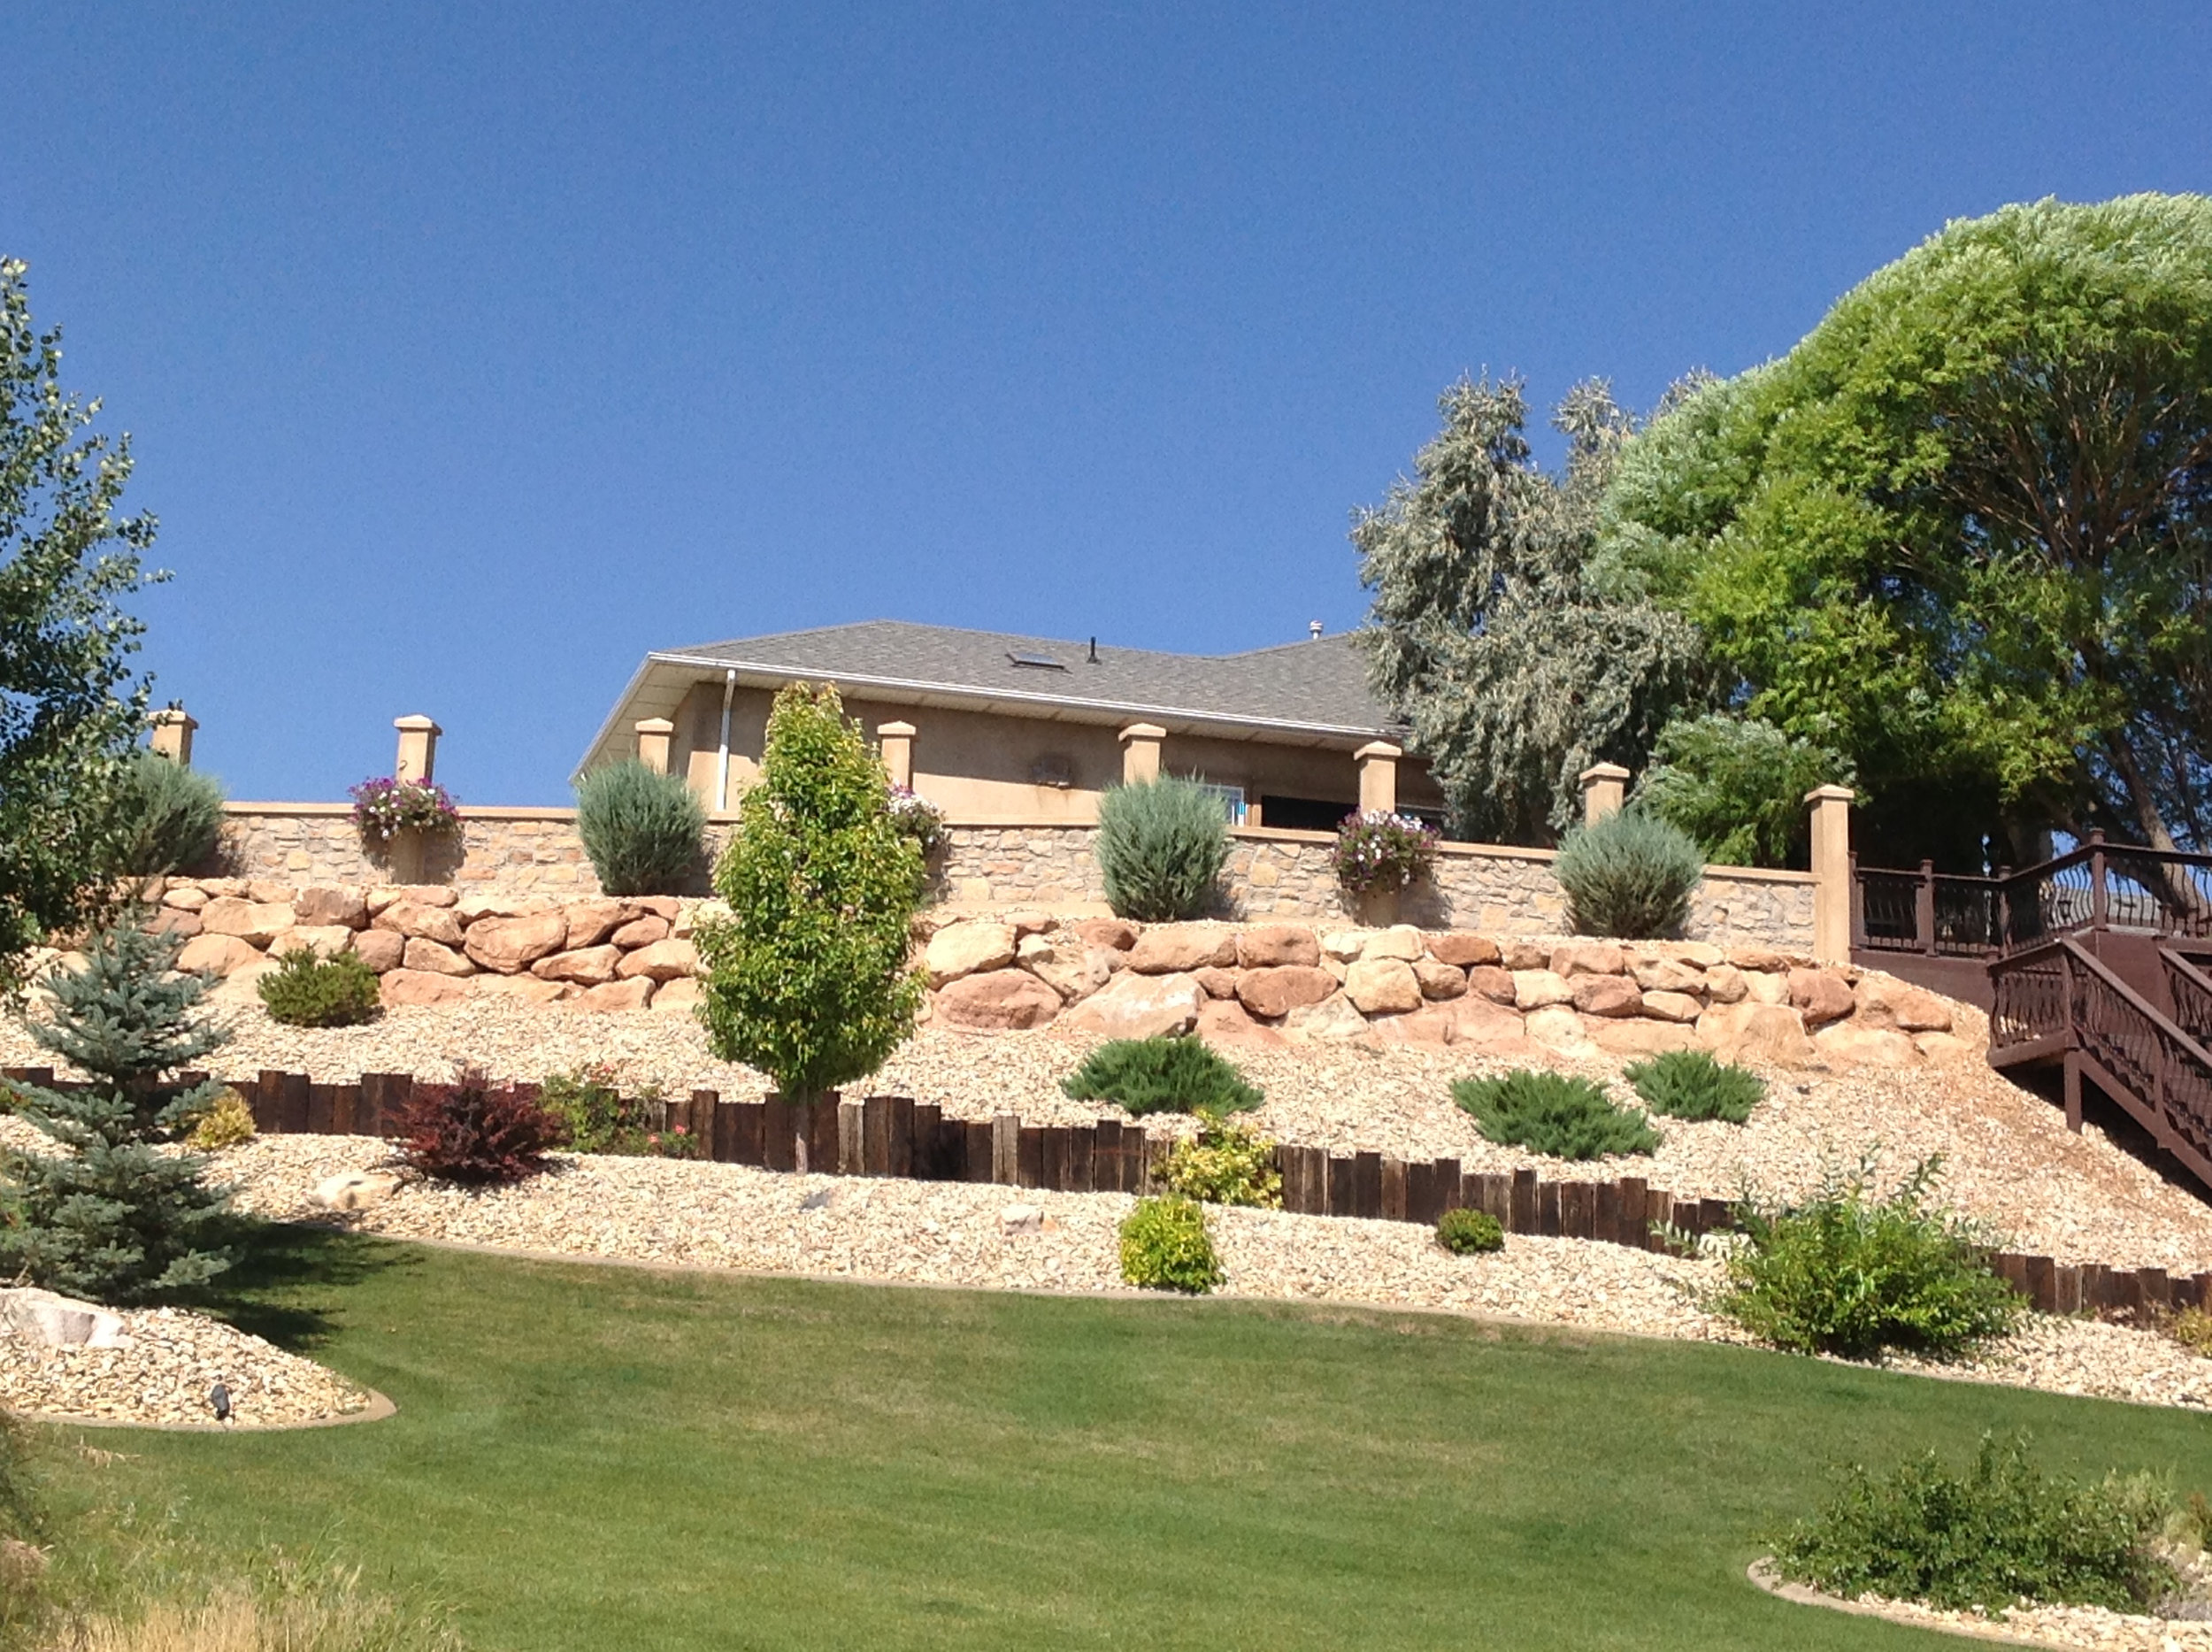 Xeriscape - Save water with xeriscaping. No matter your budget, we can help you create a beautiful, water-wise landscape.